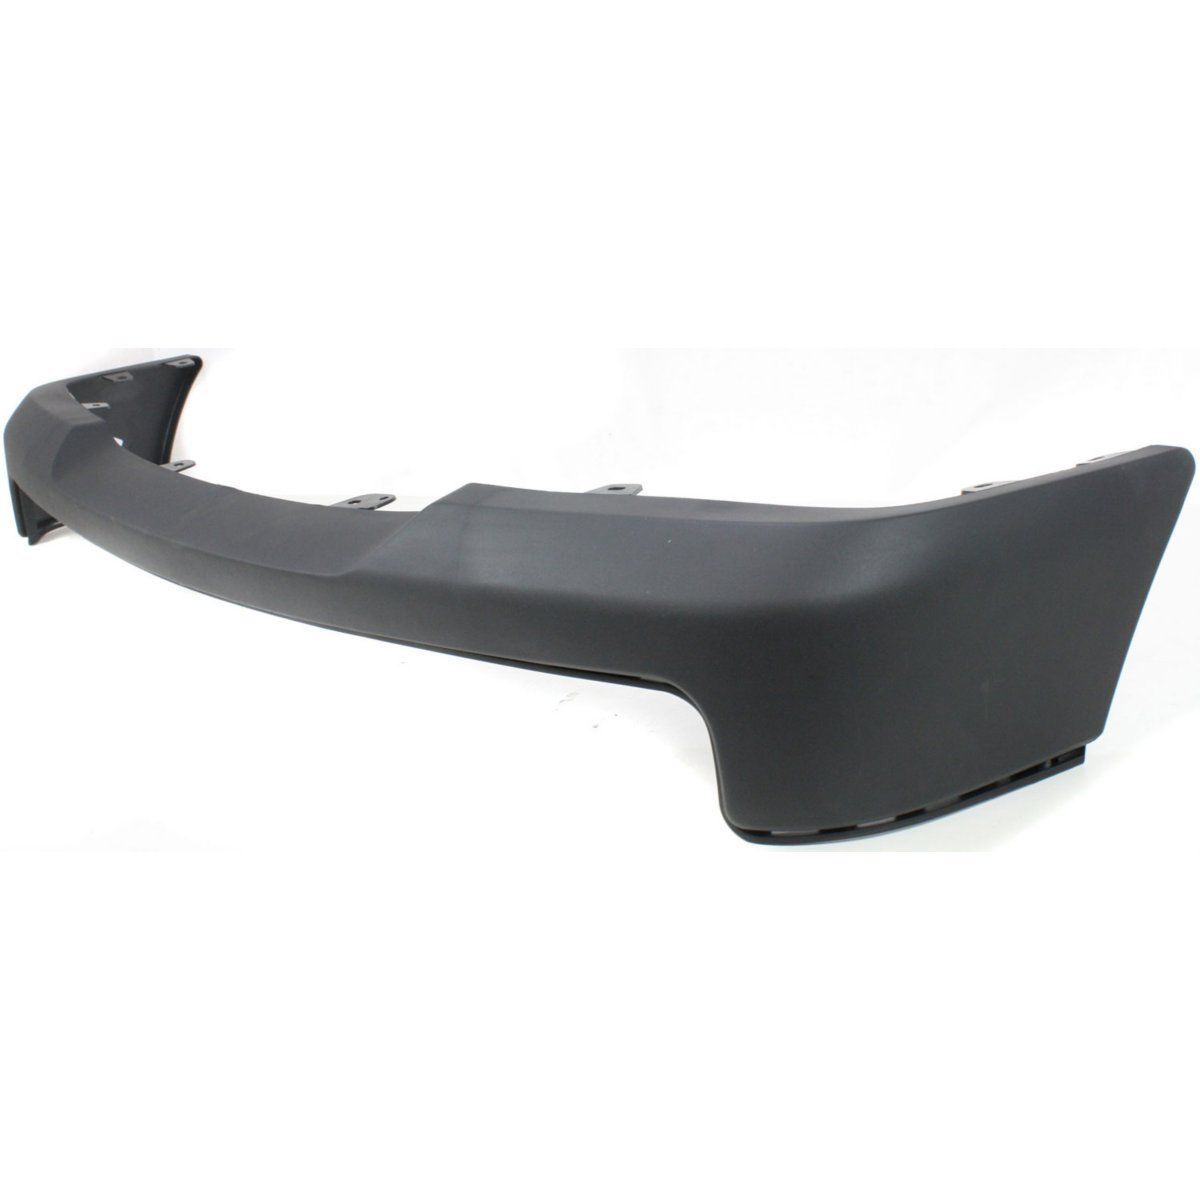 2006-2011 FORD RANGER Front Bumper Cover w/o stx model Painted to Match